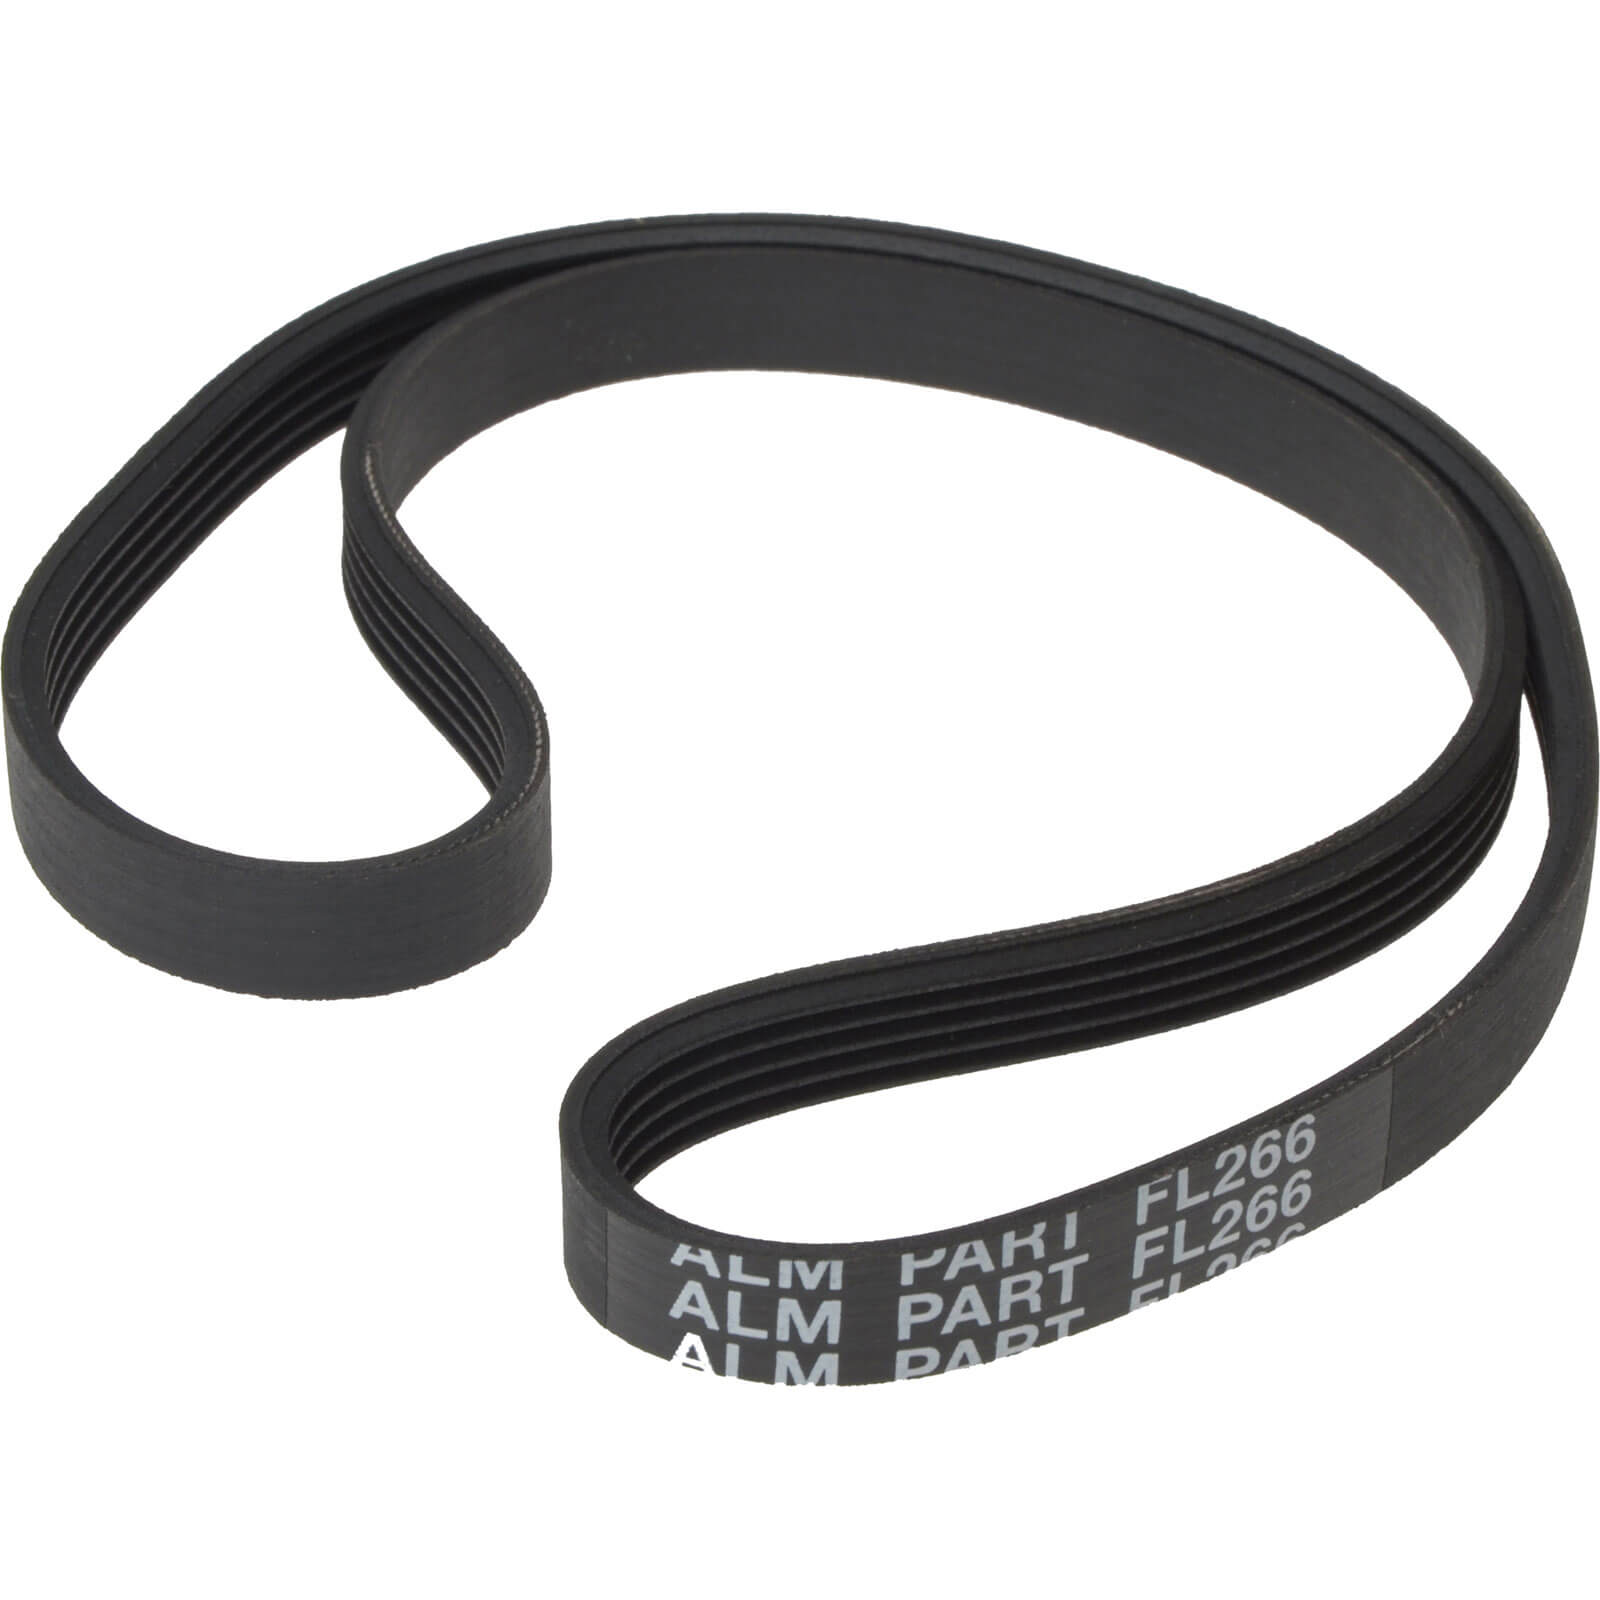 ALM Manufacturing FL266 Poly V Belt to Fit Flymo Turbo Compact